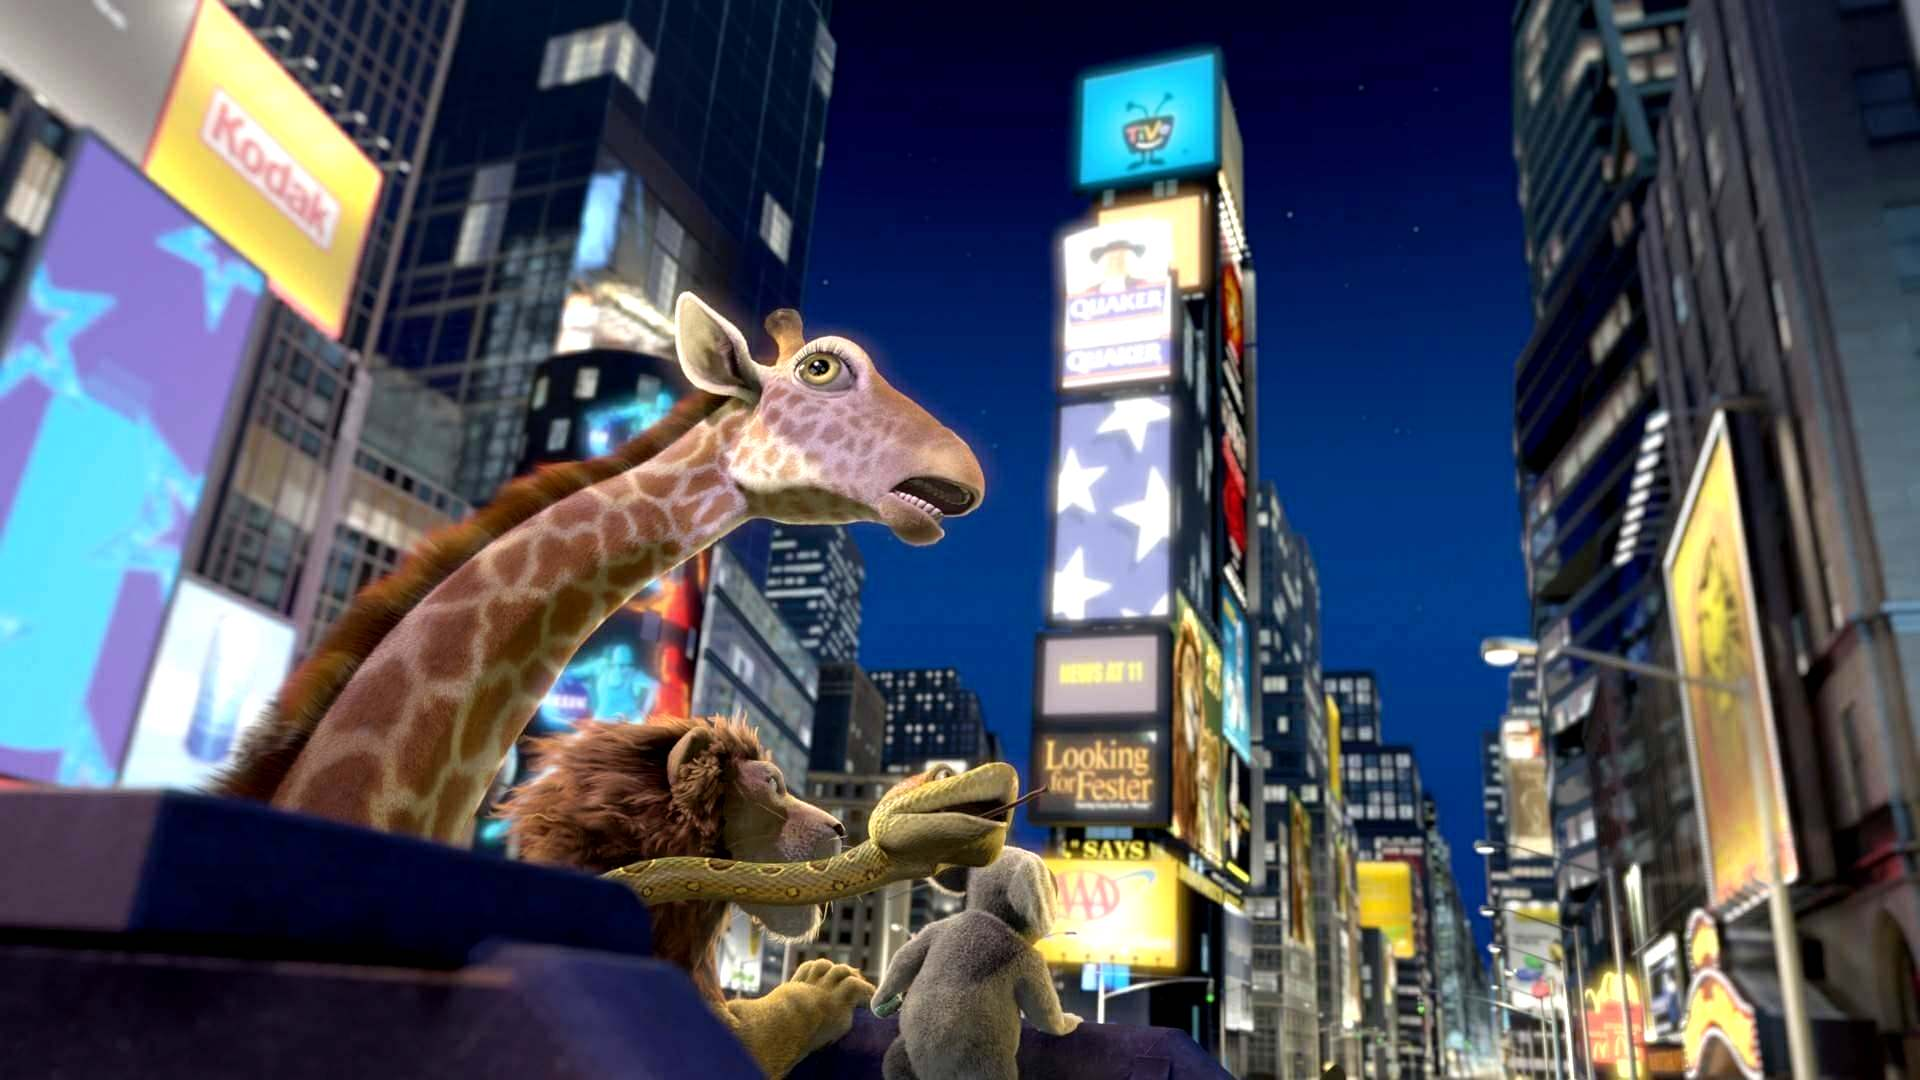 The animals escape into the streets of New York City in The Wild (2006)